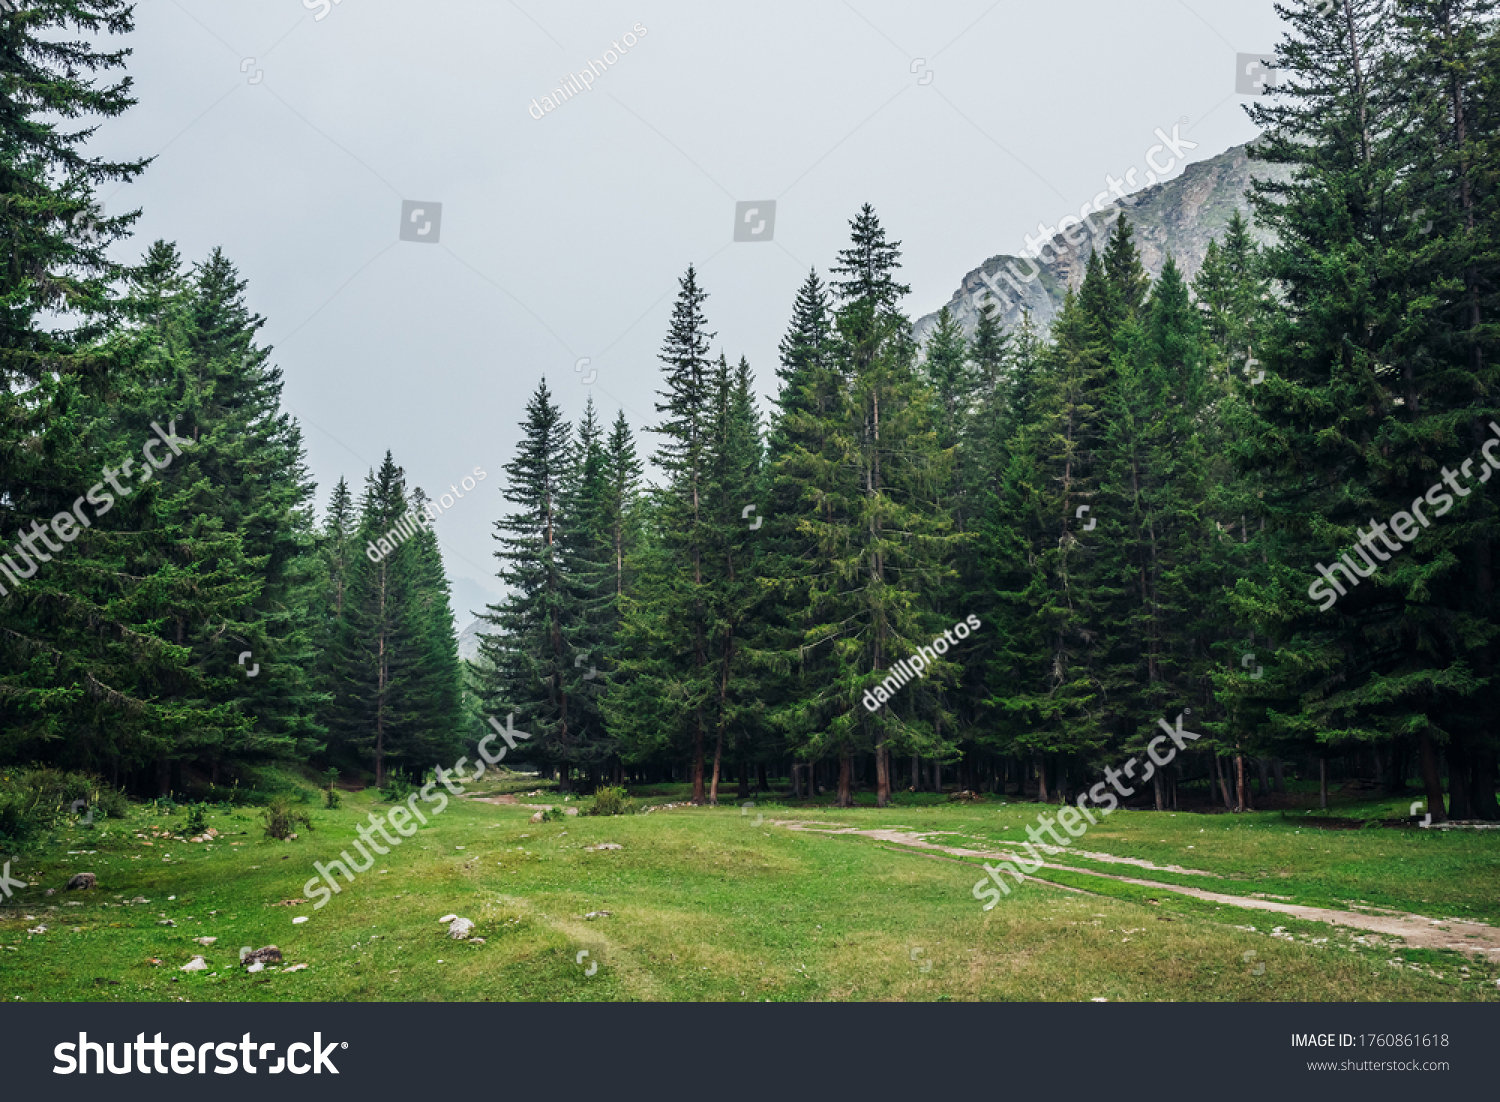 Atmospheric green forest landscape with firs in mountains. Minimalist scenery with edge coniferous forest and rocks in light mist. View to conifer trees and rocks in light haze. Mountain woodland. #1760861618